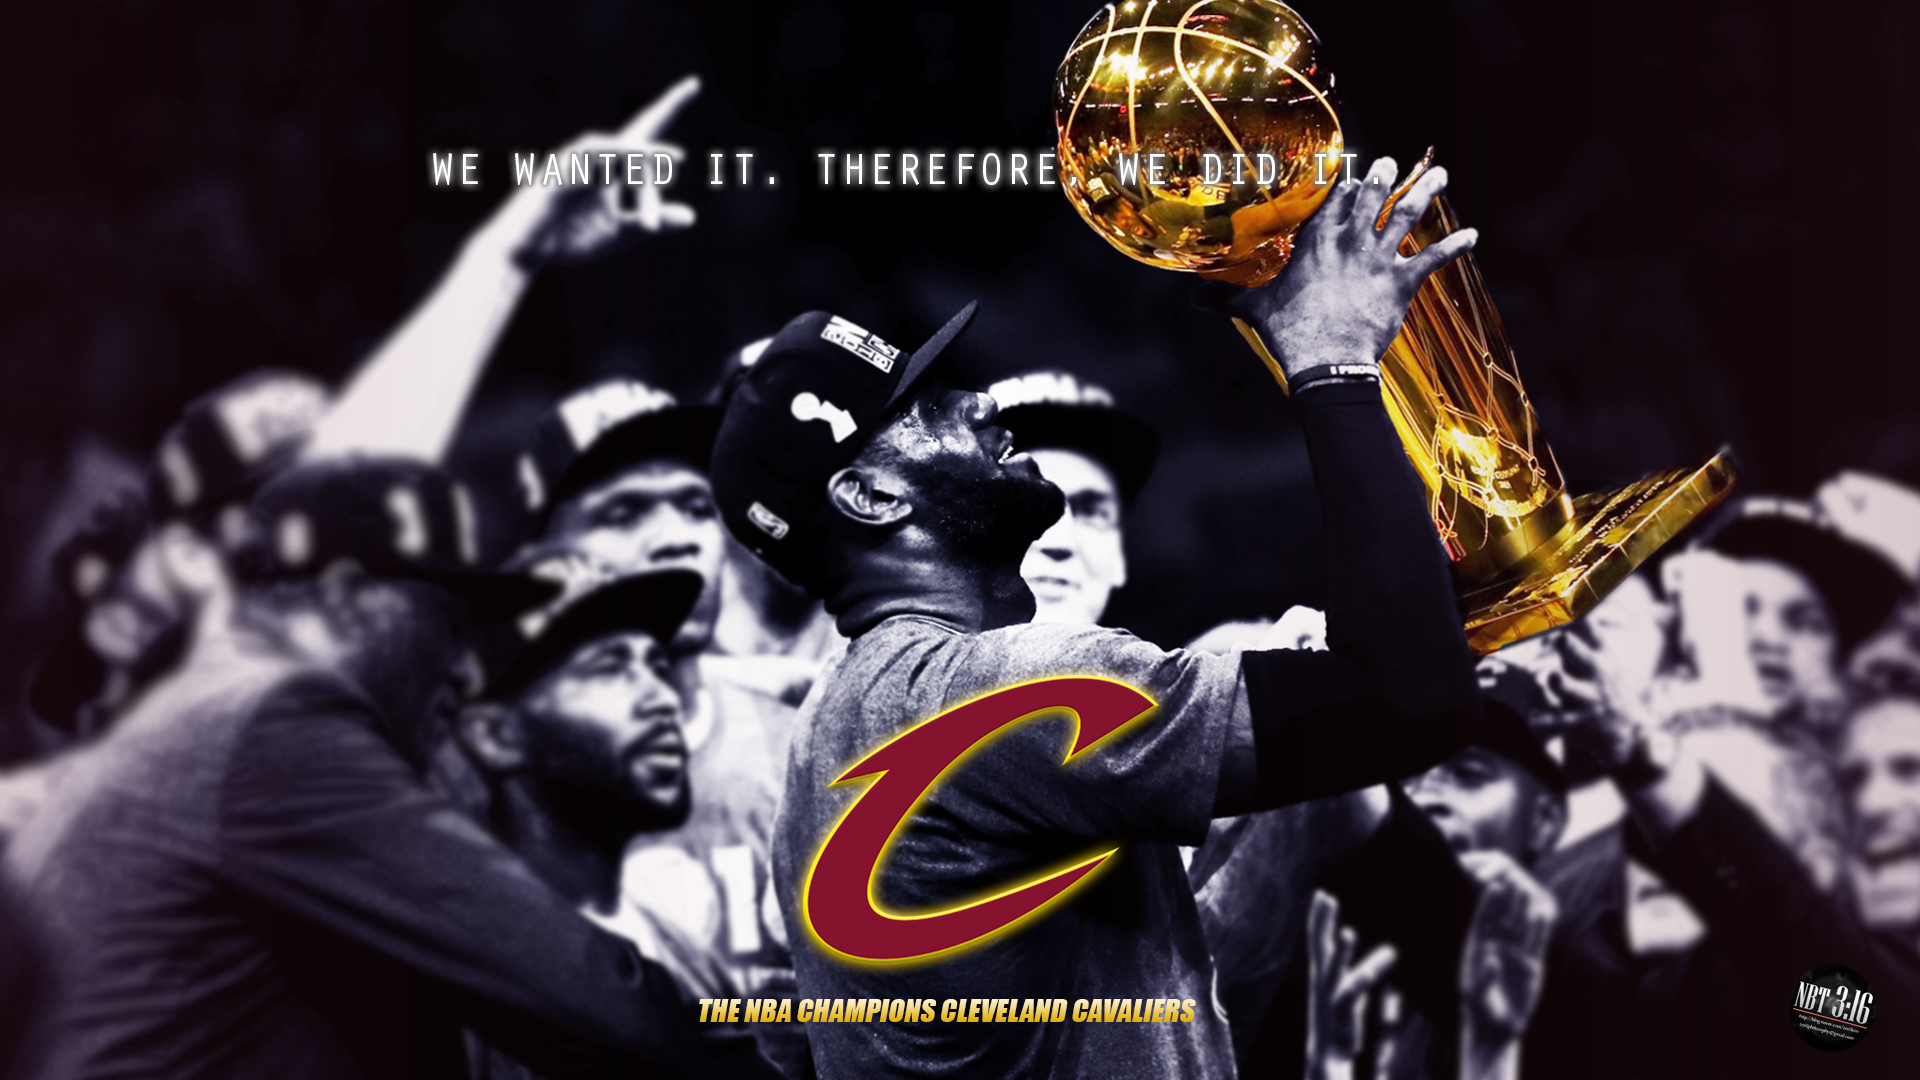 2016 nba champions cleveland cavaliers by takezer0 on